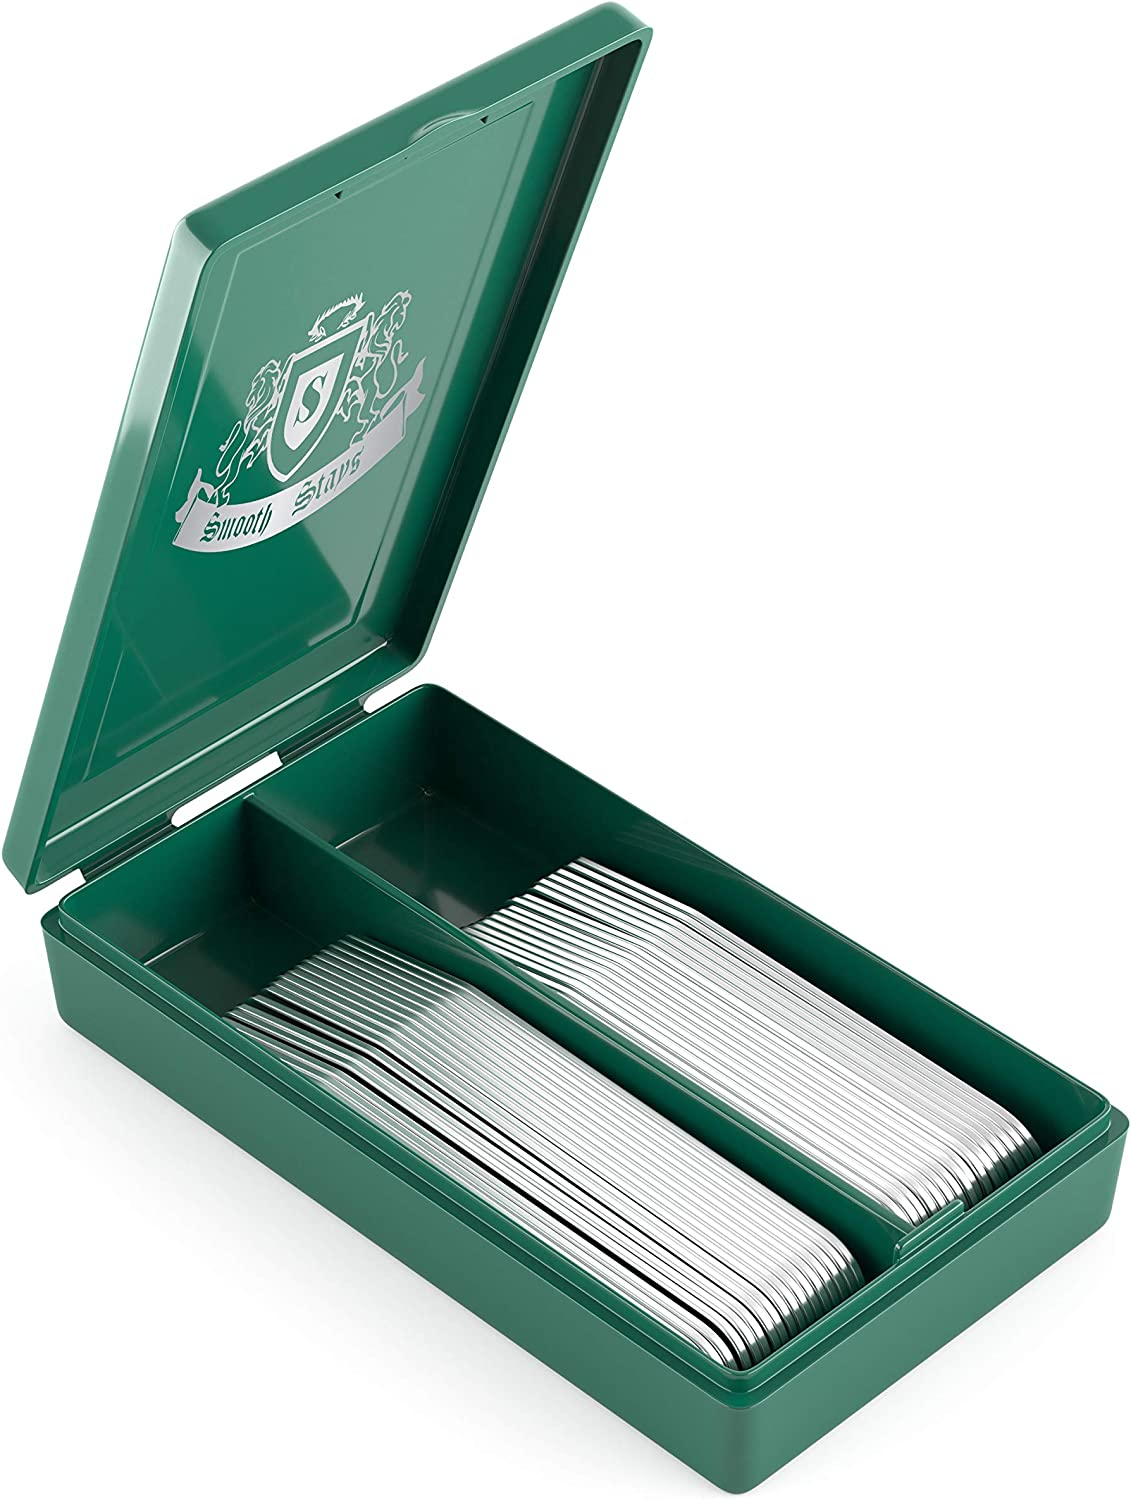 36 Premium Metal Collar Stays in a Plastic Box, Order the Sizes You Need